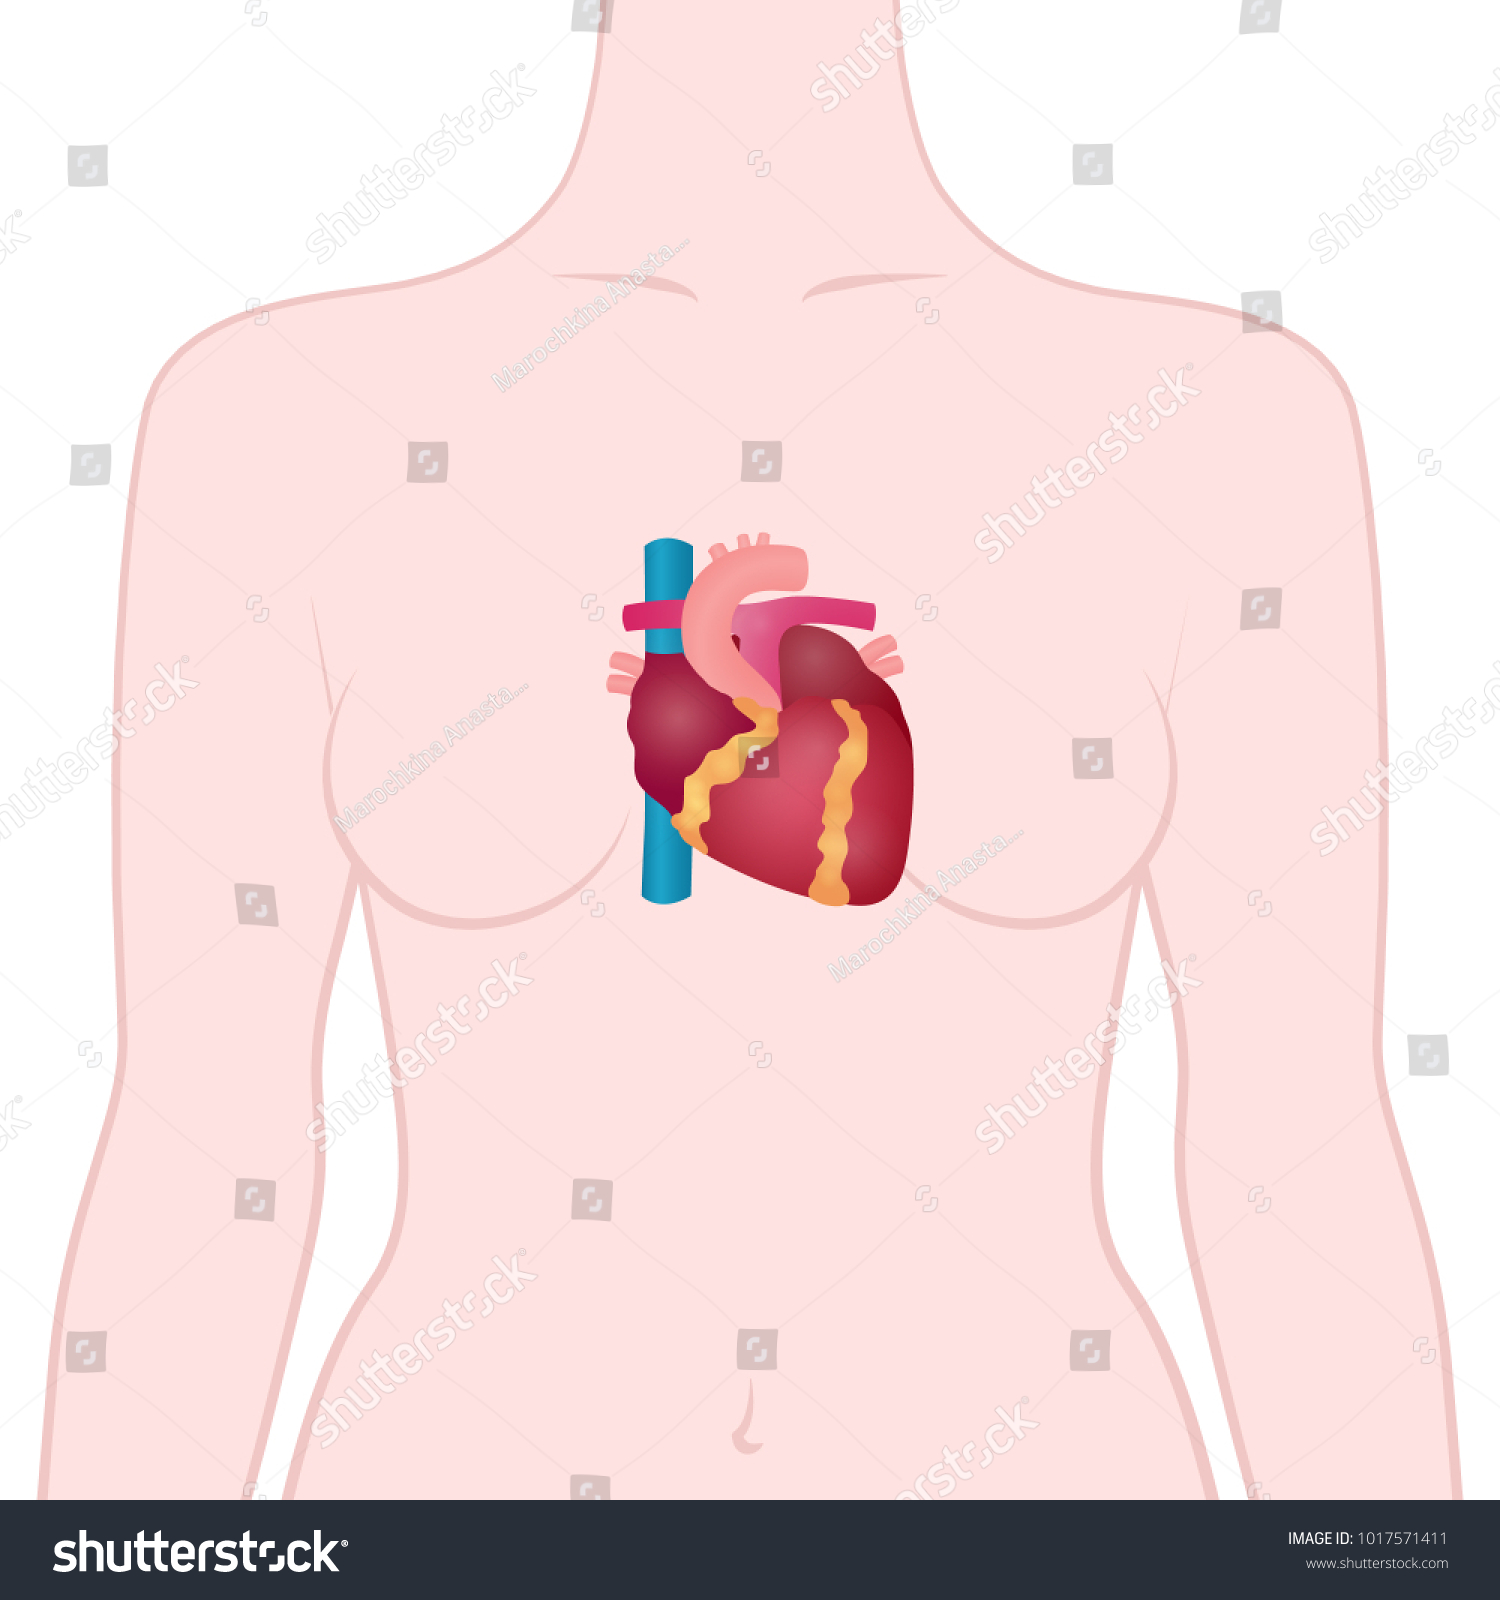 Anatomy human heart location heart human stock vector 1017571411 anatomy of the human heart the location of the heart in the human body ccuart Gallery